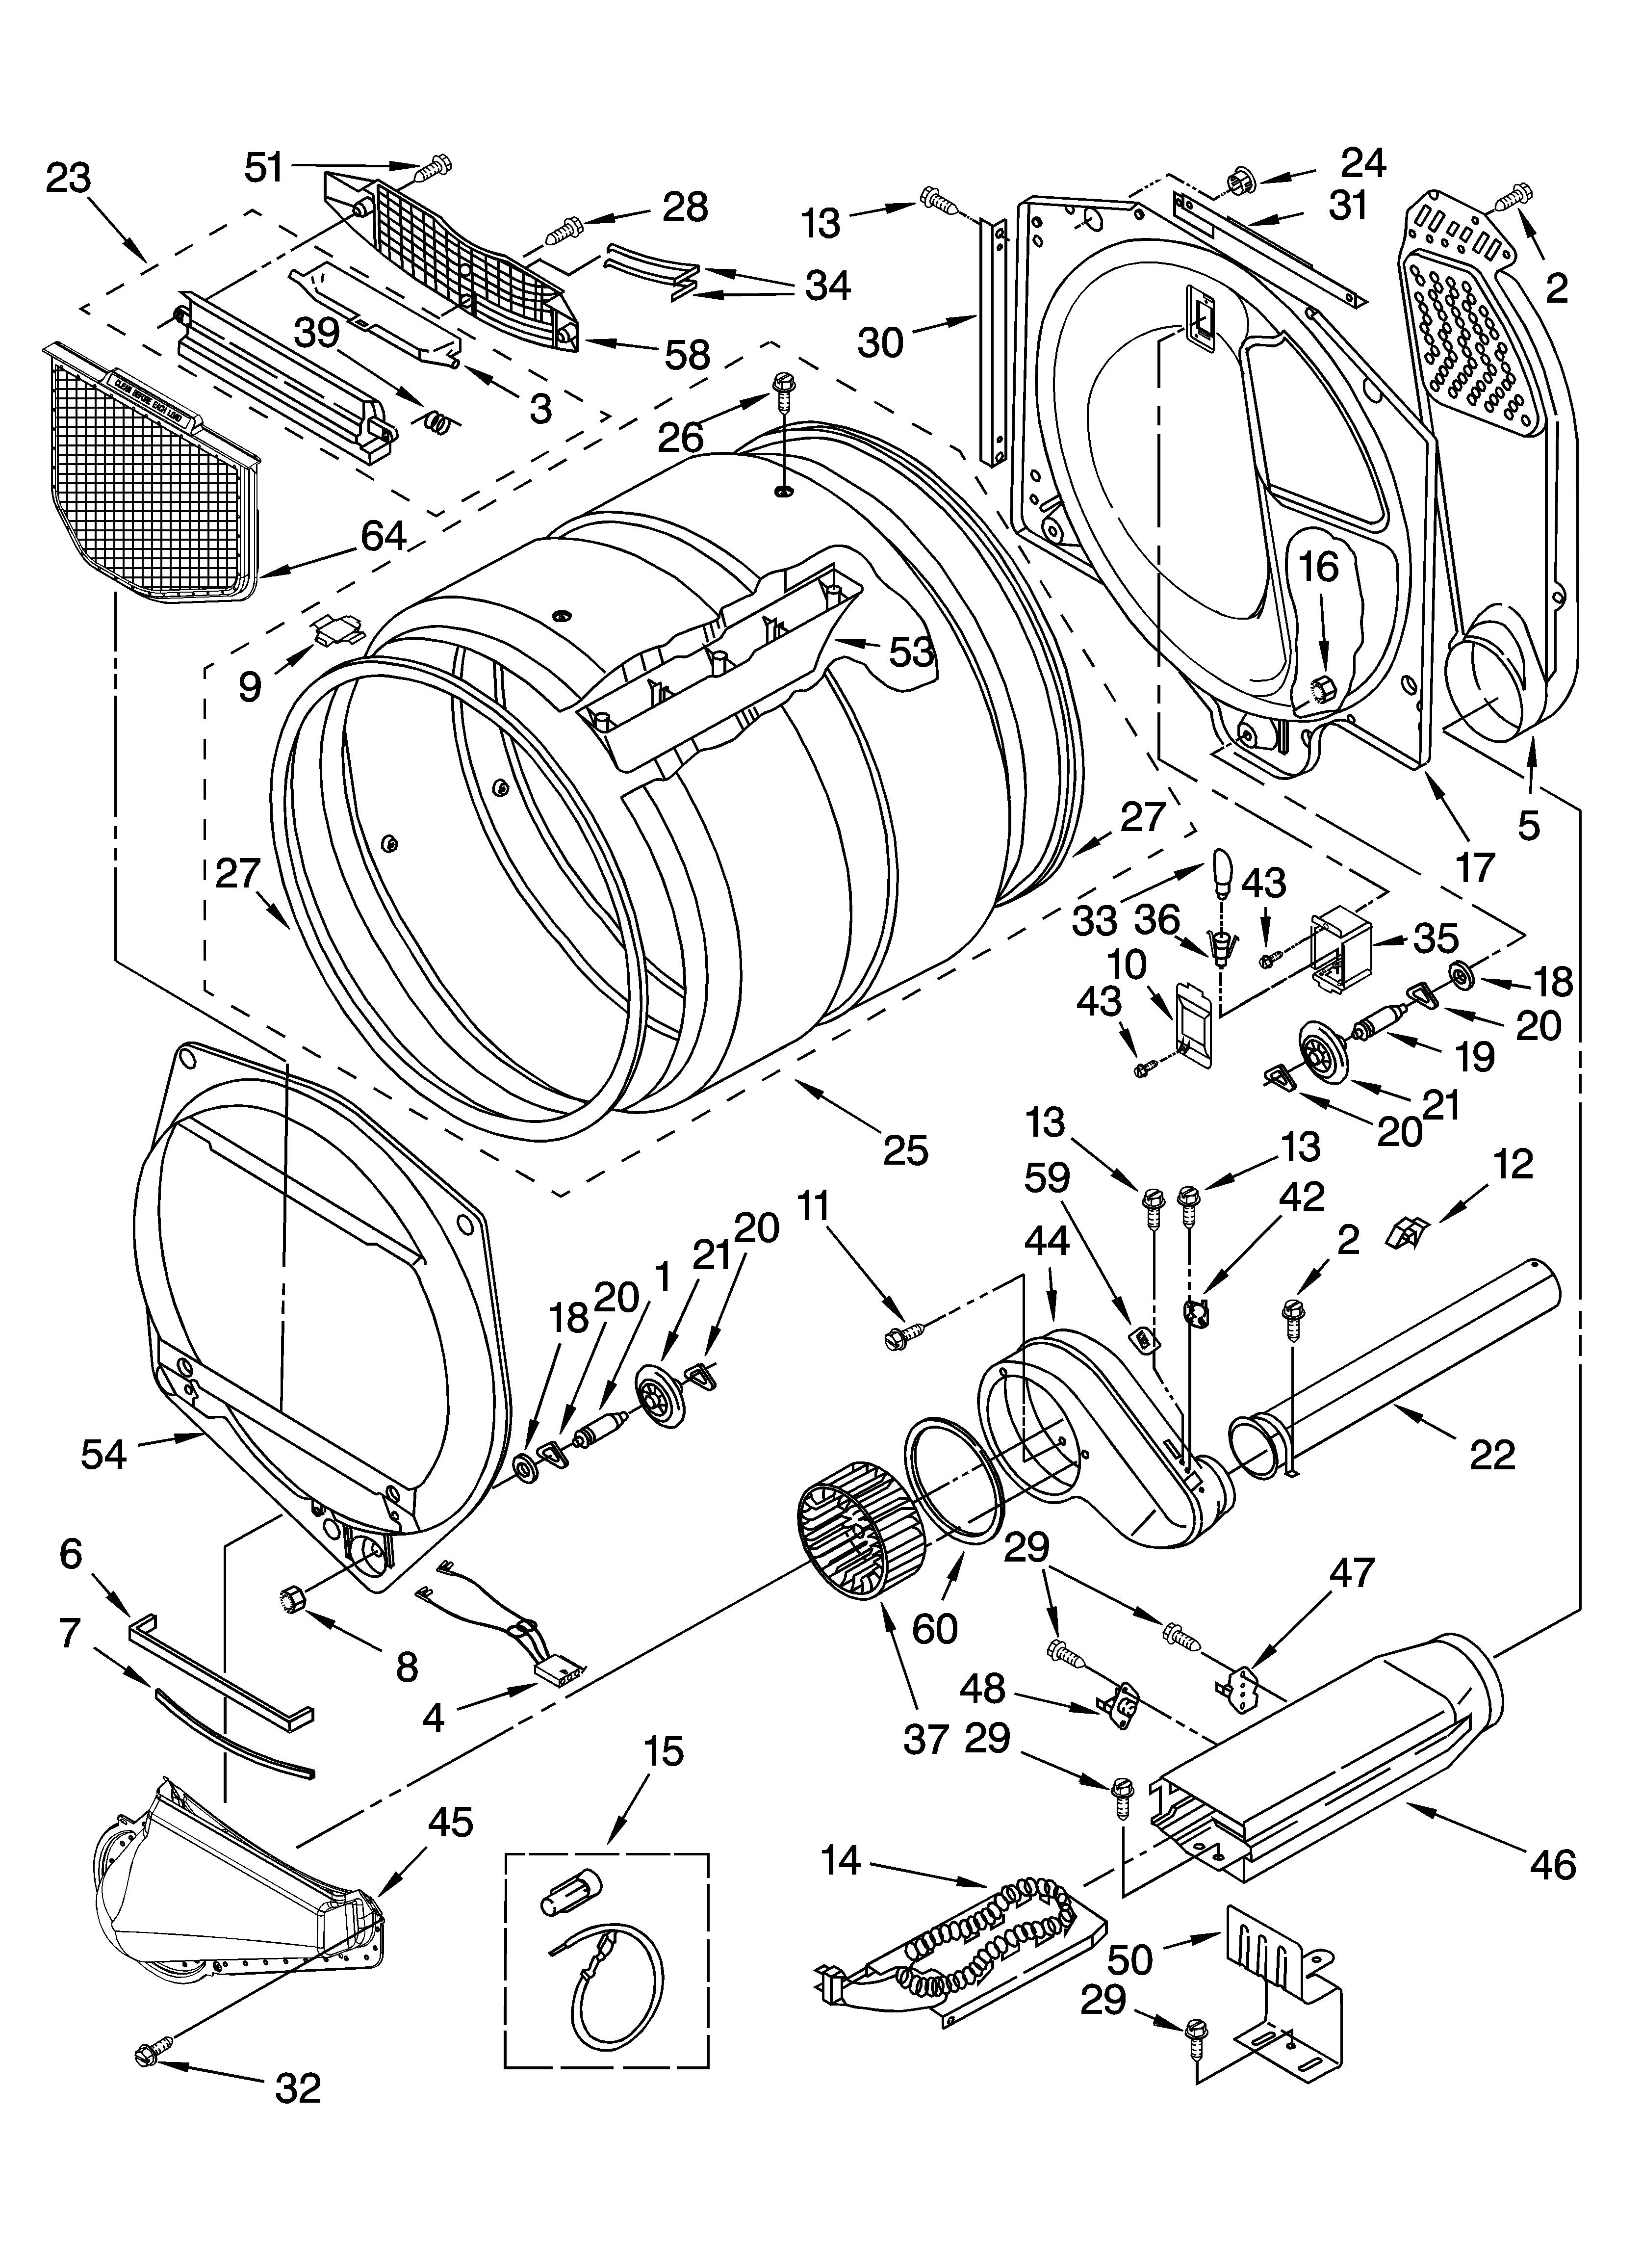 small resolution of wiring diagram for whirlpool cabrio dryer in addition kenmore whirlpool dryer belt replacement diagram on whirlpool dryer wiring